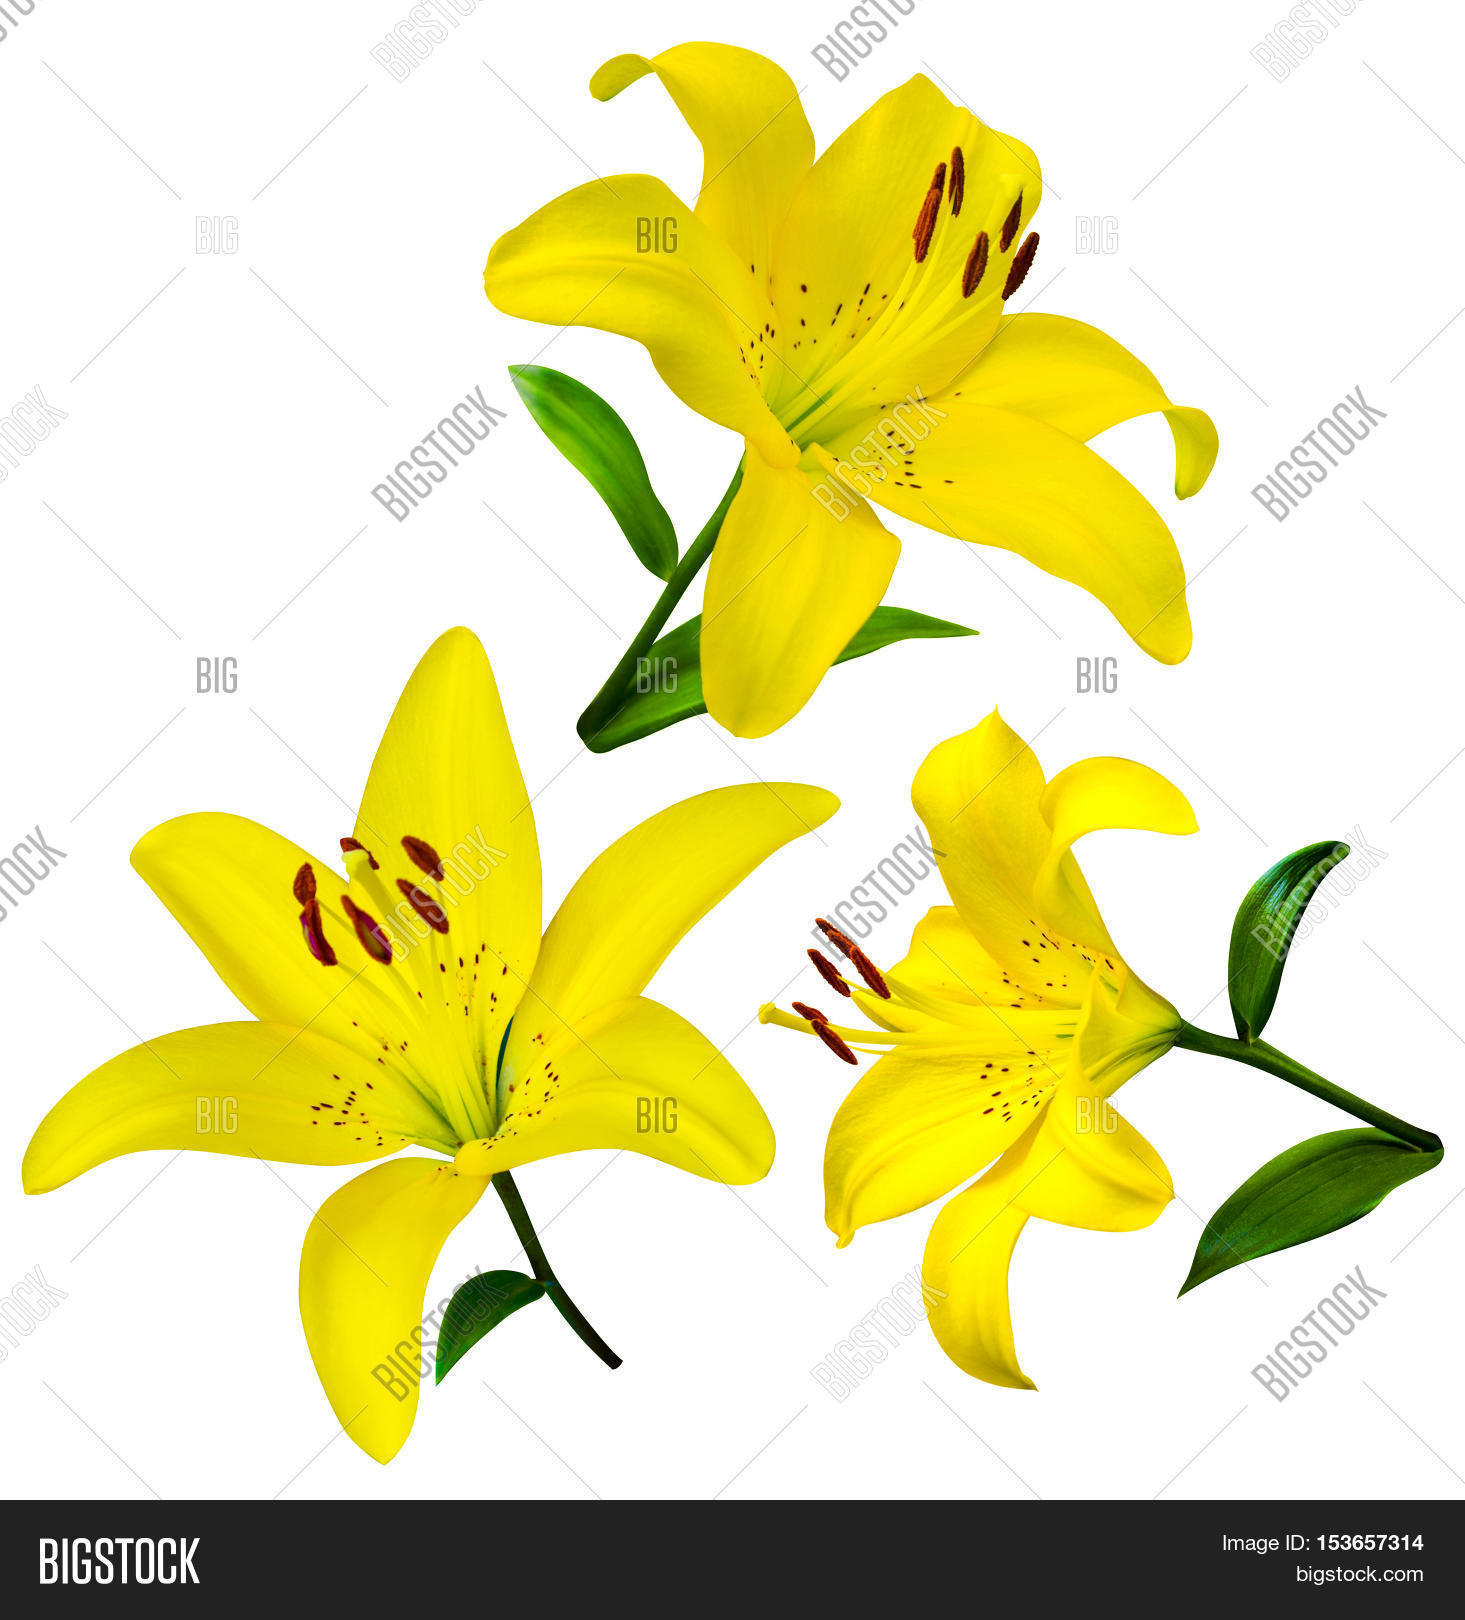 Lily flowers isolated image photo free trial bigstock lily flowers isolated lily flowers lily flowers isolated on white backgroundly izmirmasajfo